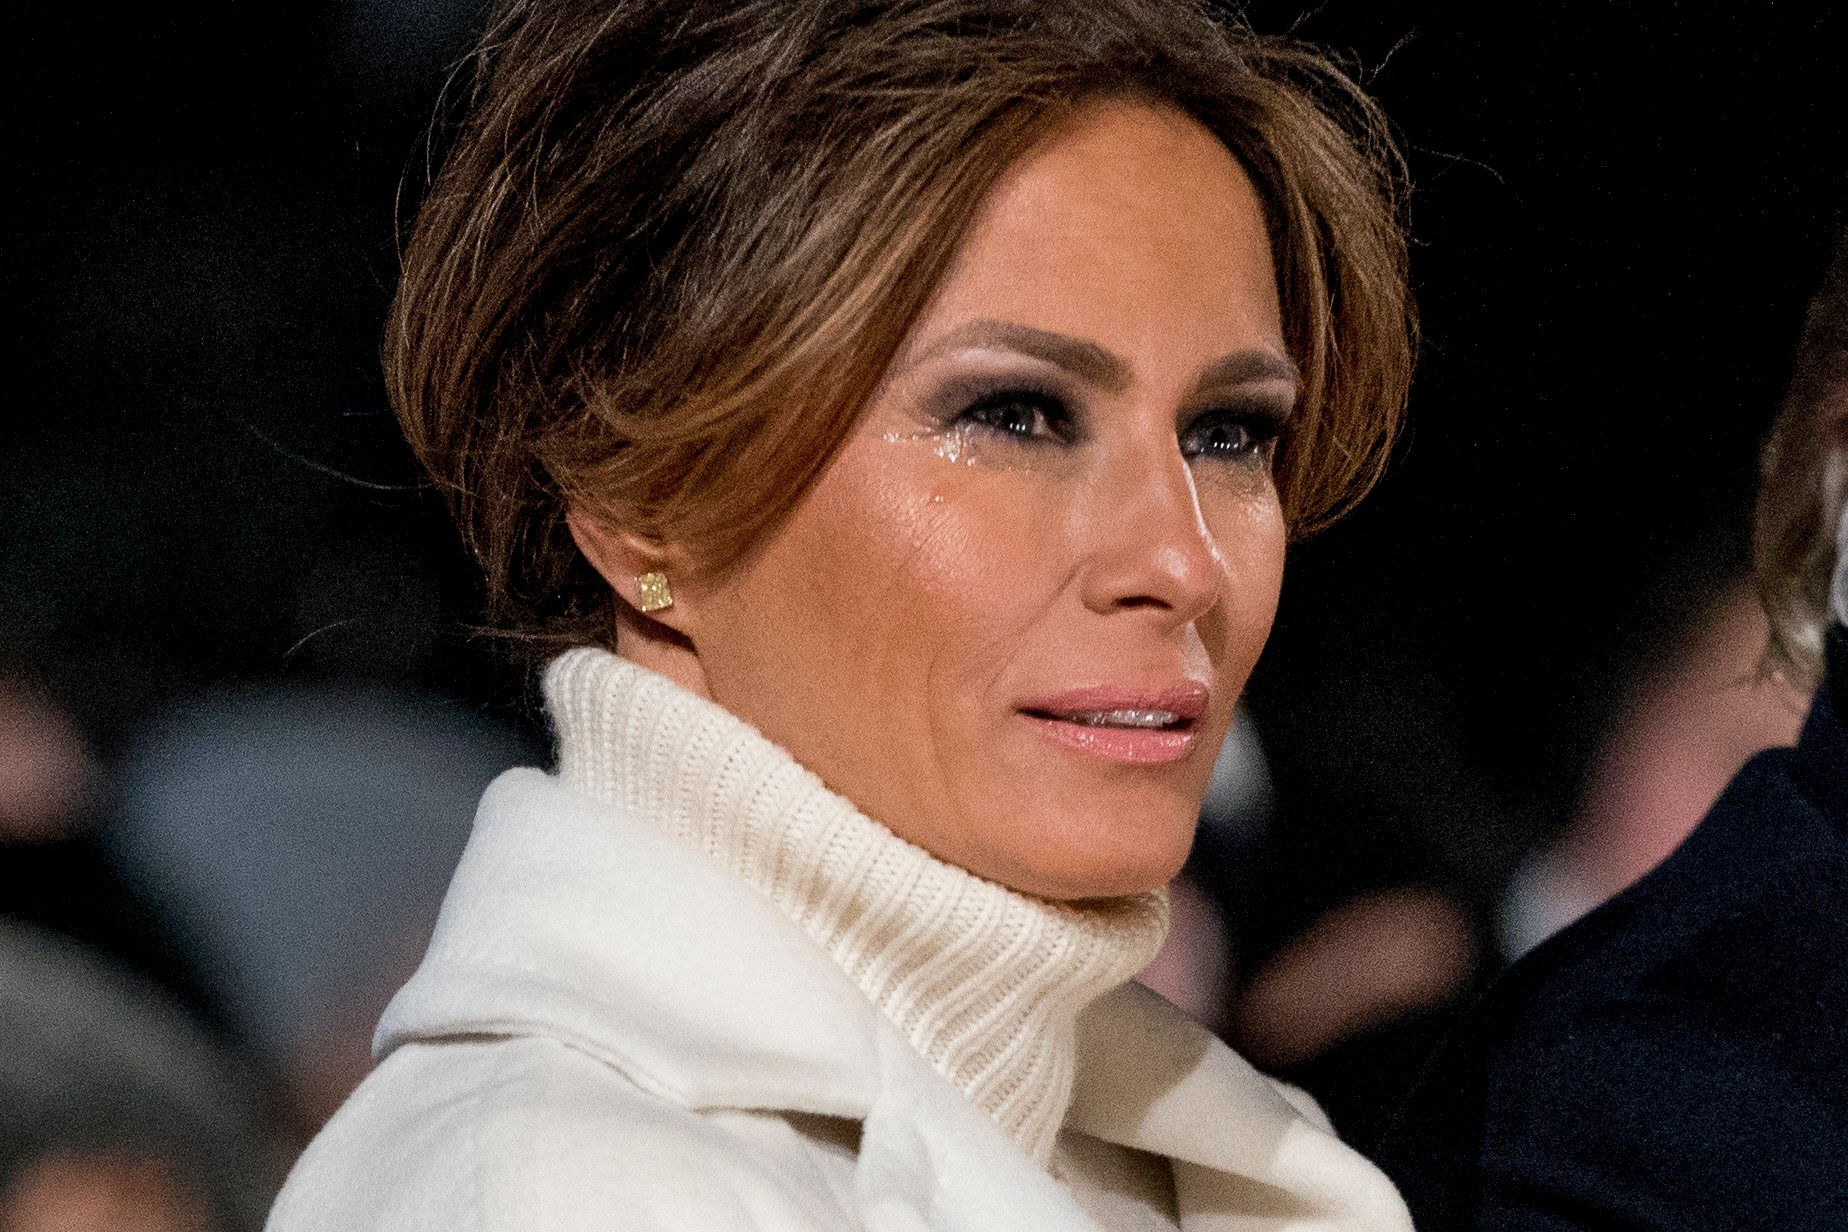 Tears collect on the face of first lady Melania Trump in the cold during the National Christmas Tree lighting ceremony at the Ellipse near the White House in Washington, Wednesday, Nov. 28, 2018. (AP Photo/Andrew Harnik)